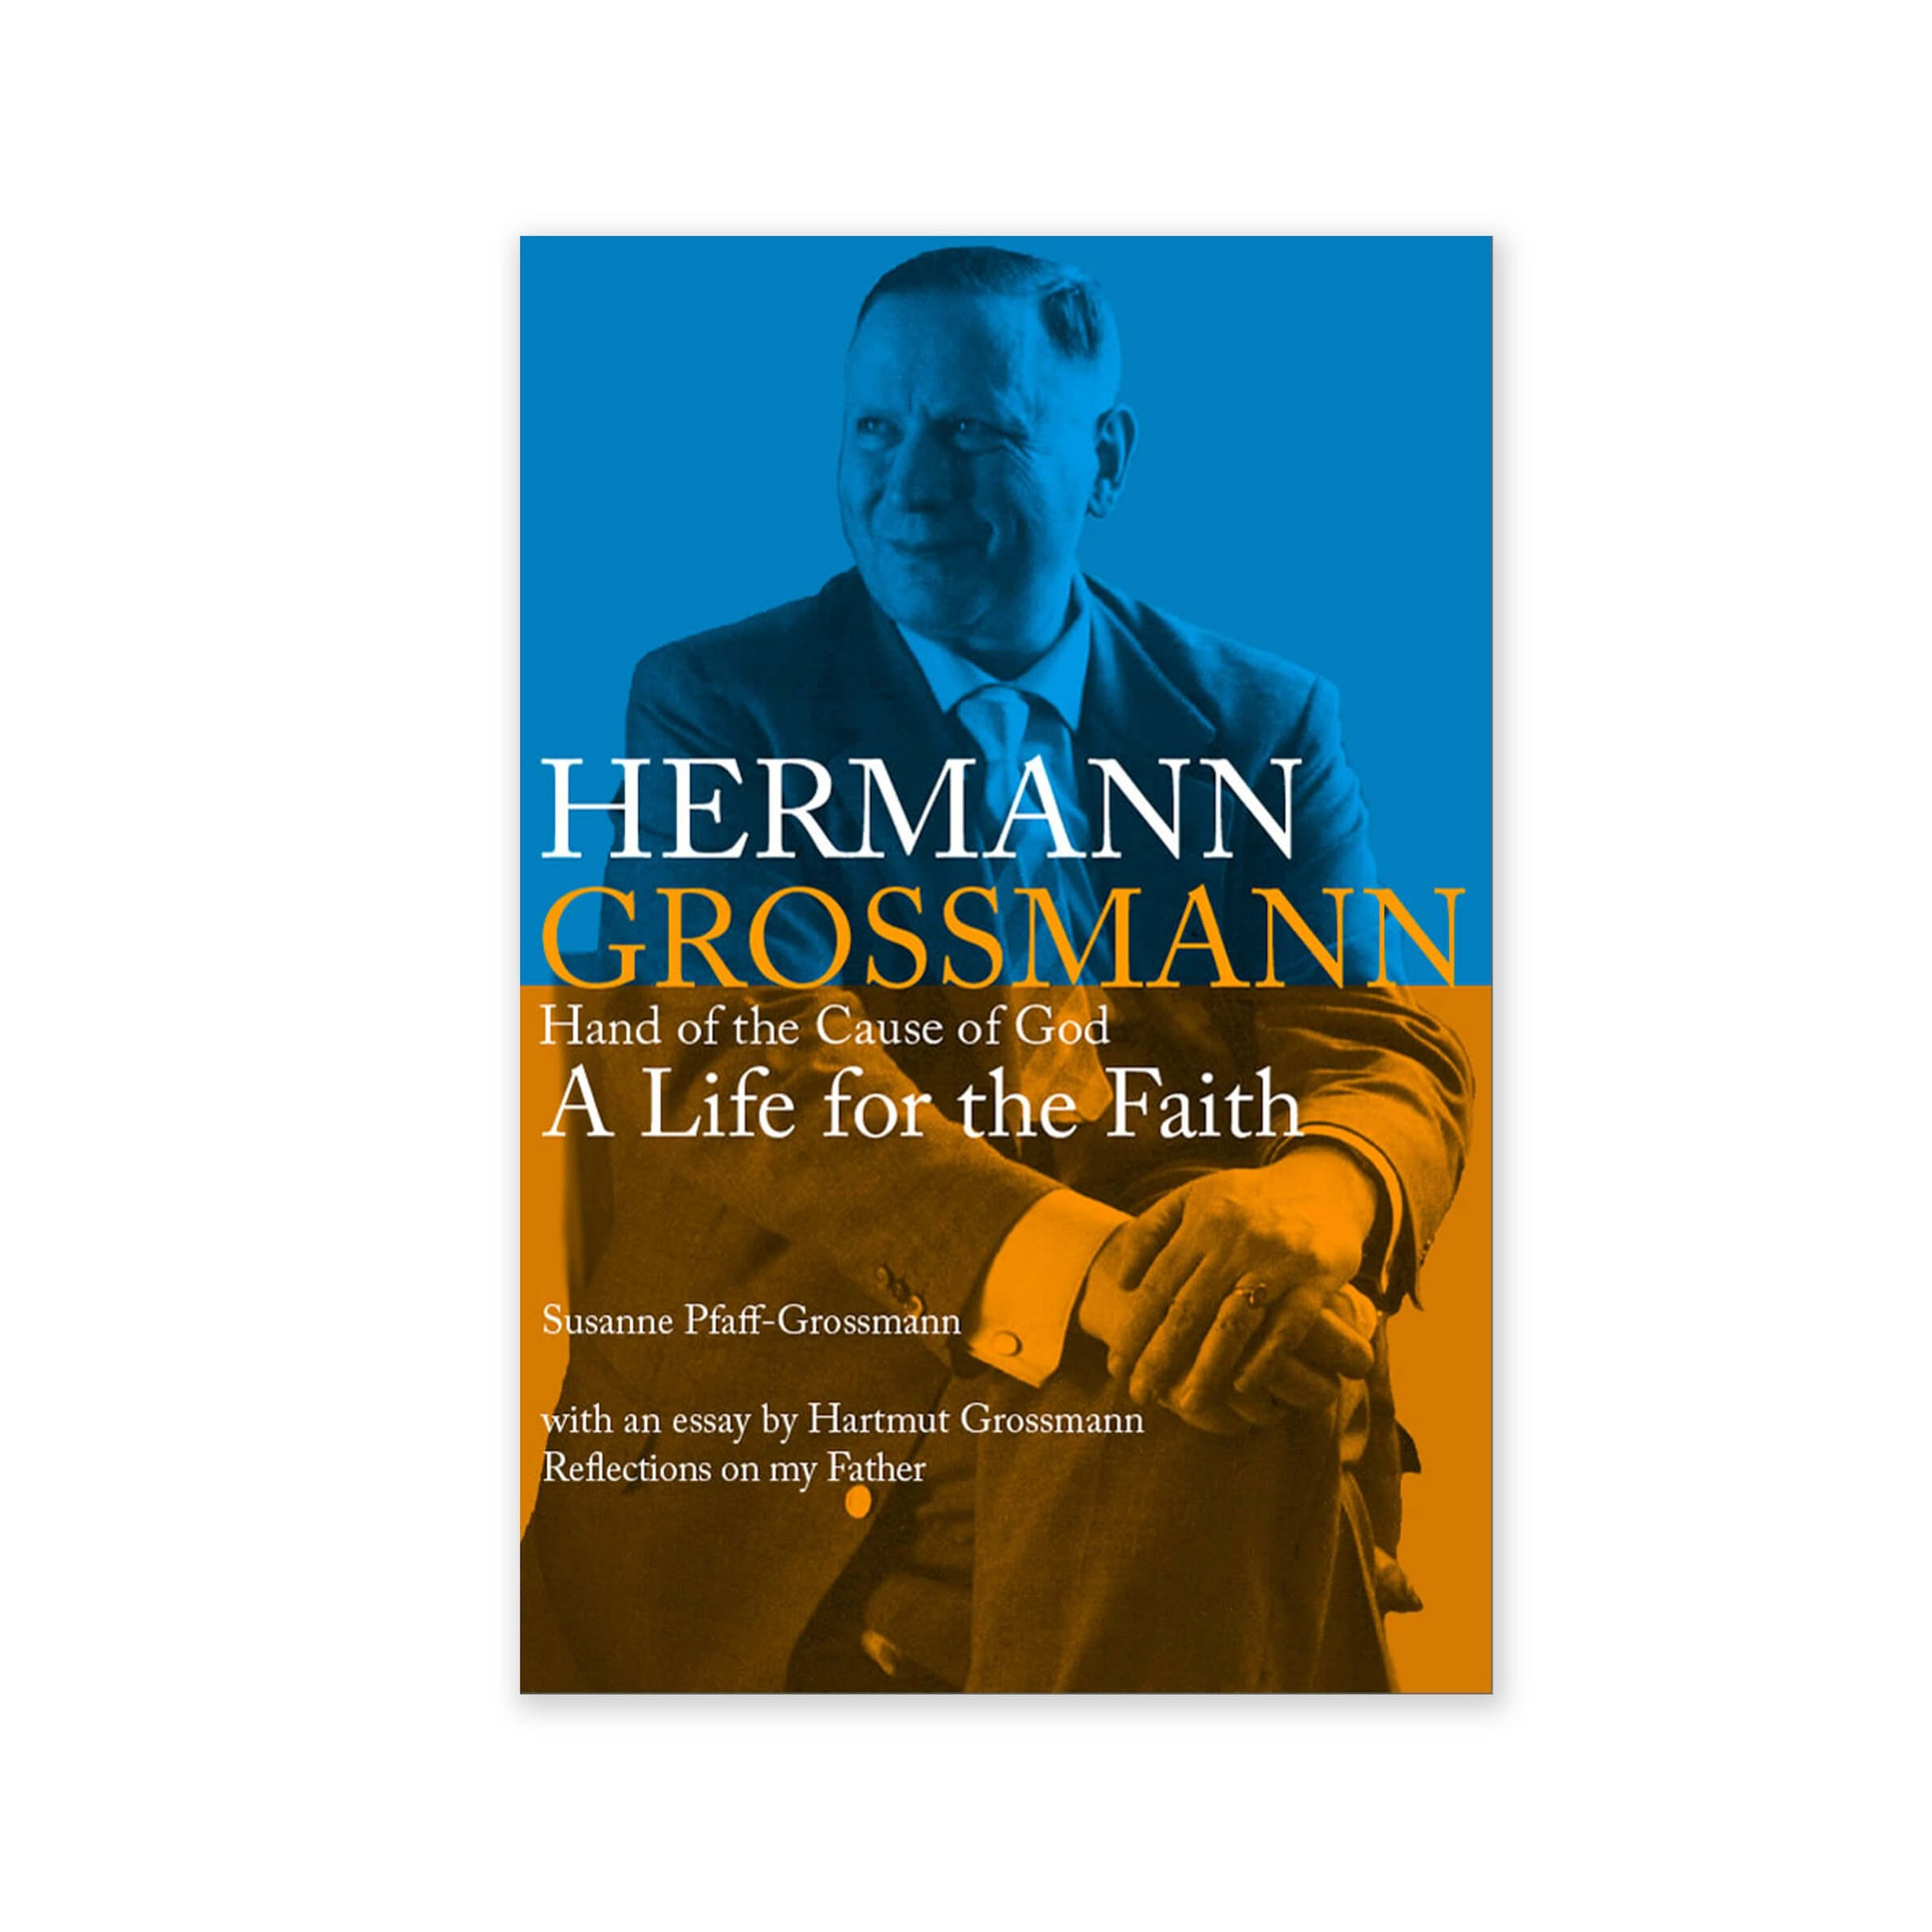 Hermann Grossmann, Hand of the Cause of God - A Life for the Faith